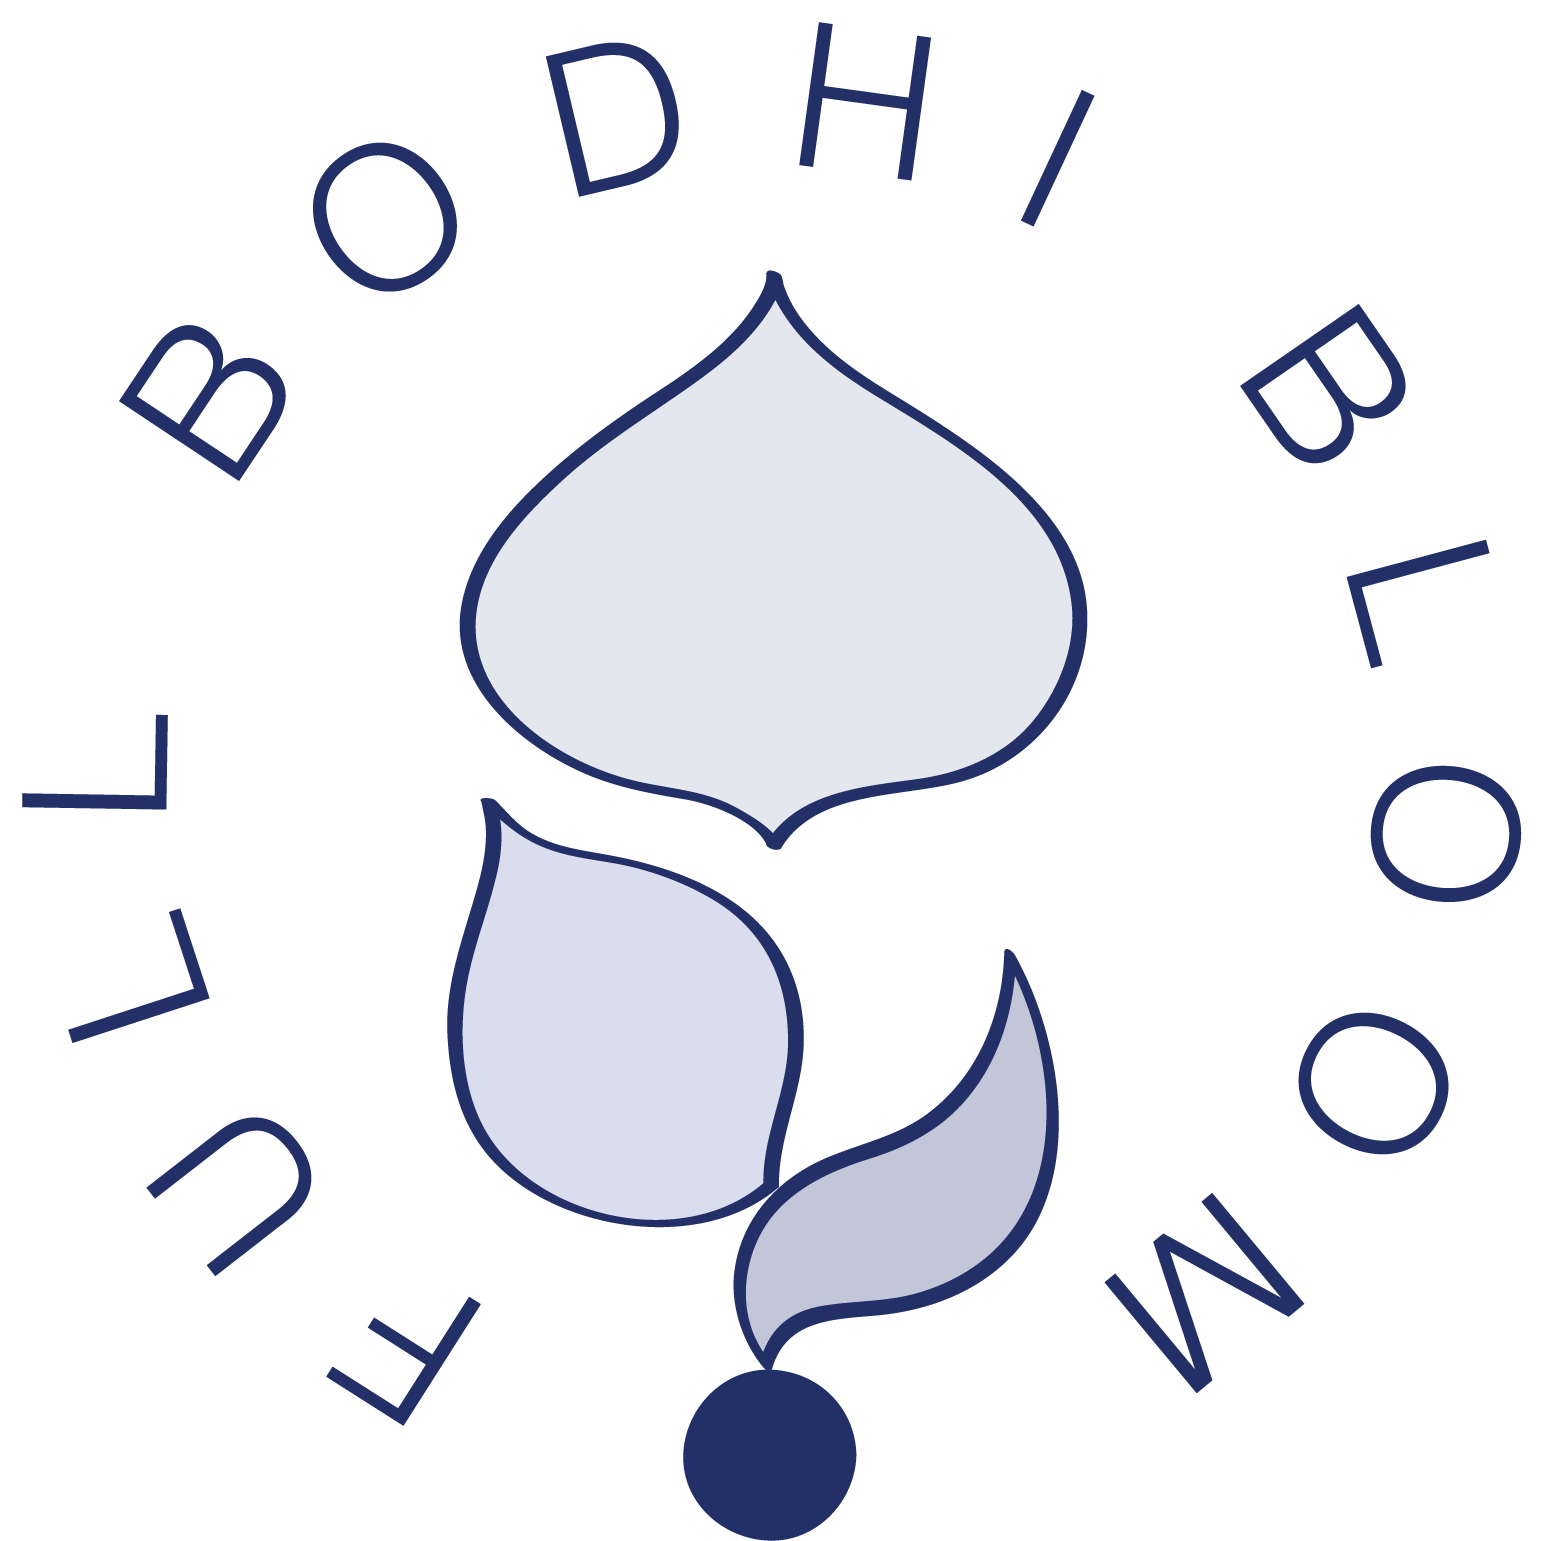 Full Bodhi Bloom